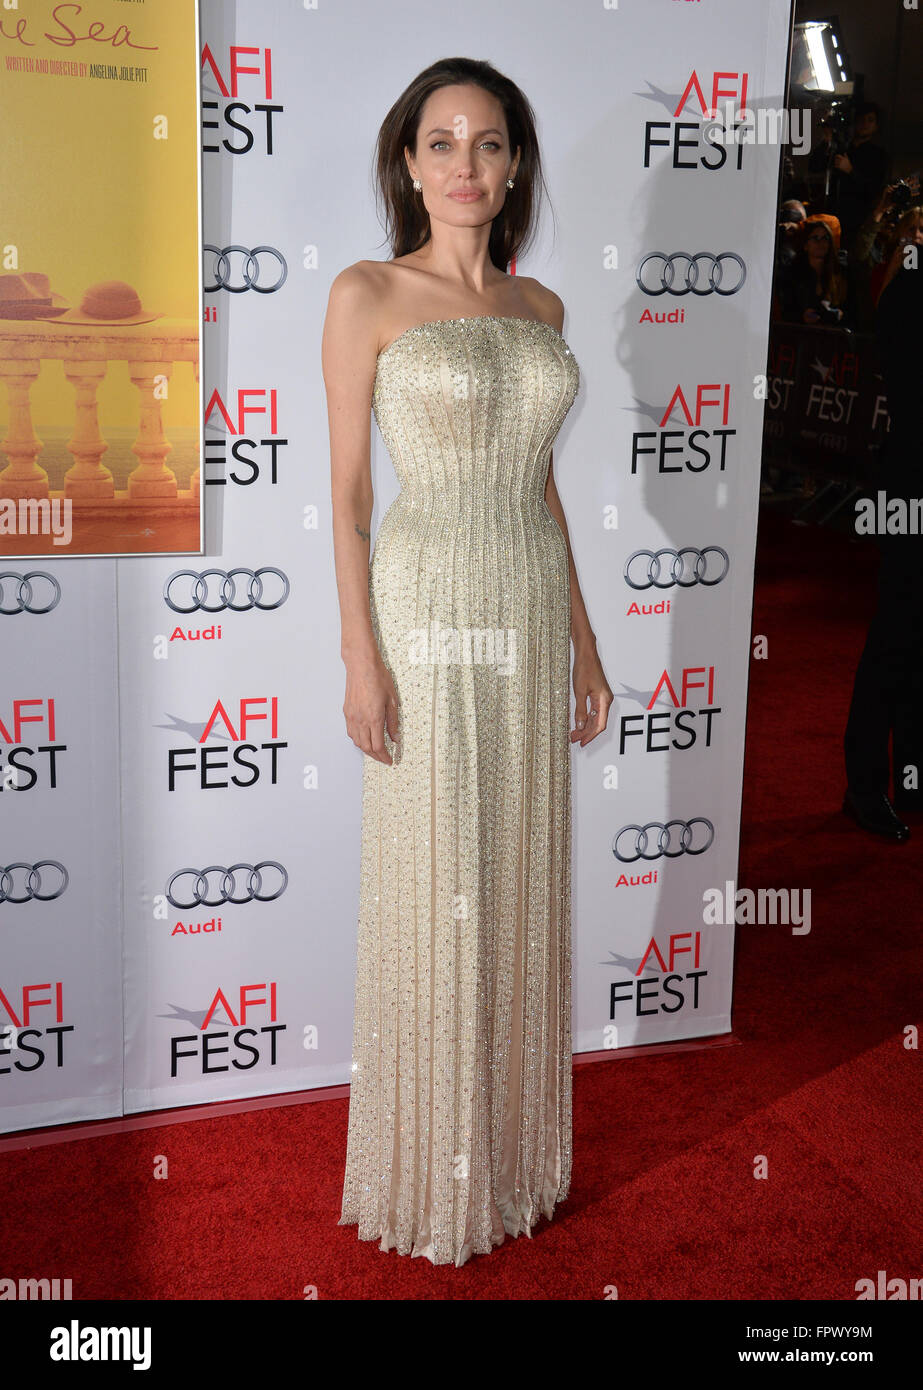 LOS ANGELES, CA - NOVEMBER 5, 2015: Actress/writer/director Angelina Jolie at the AFI Festival premiere of her movie - Stock Image